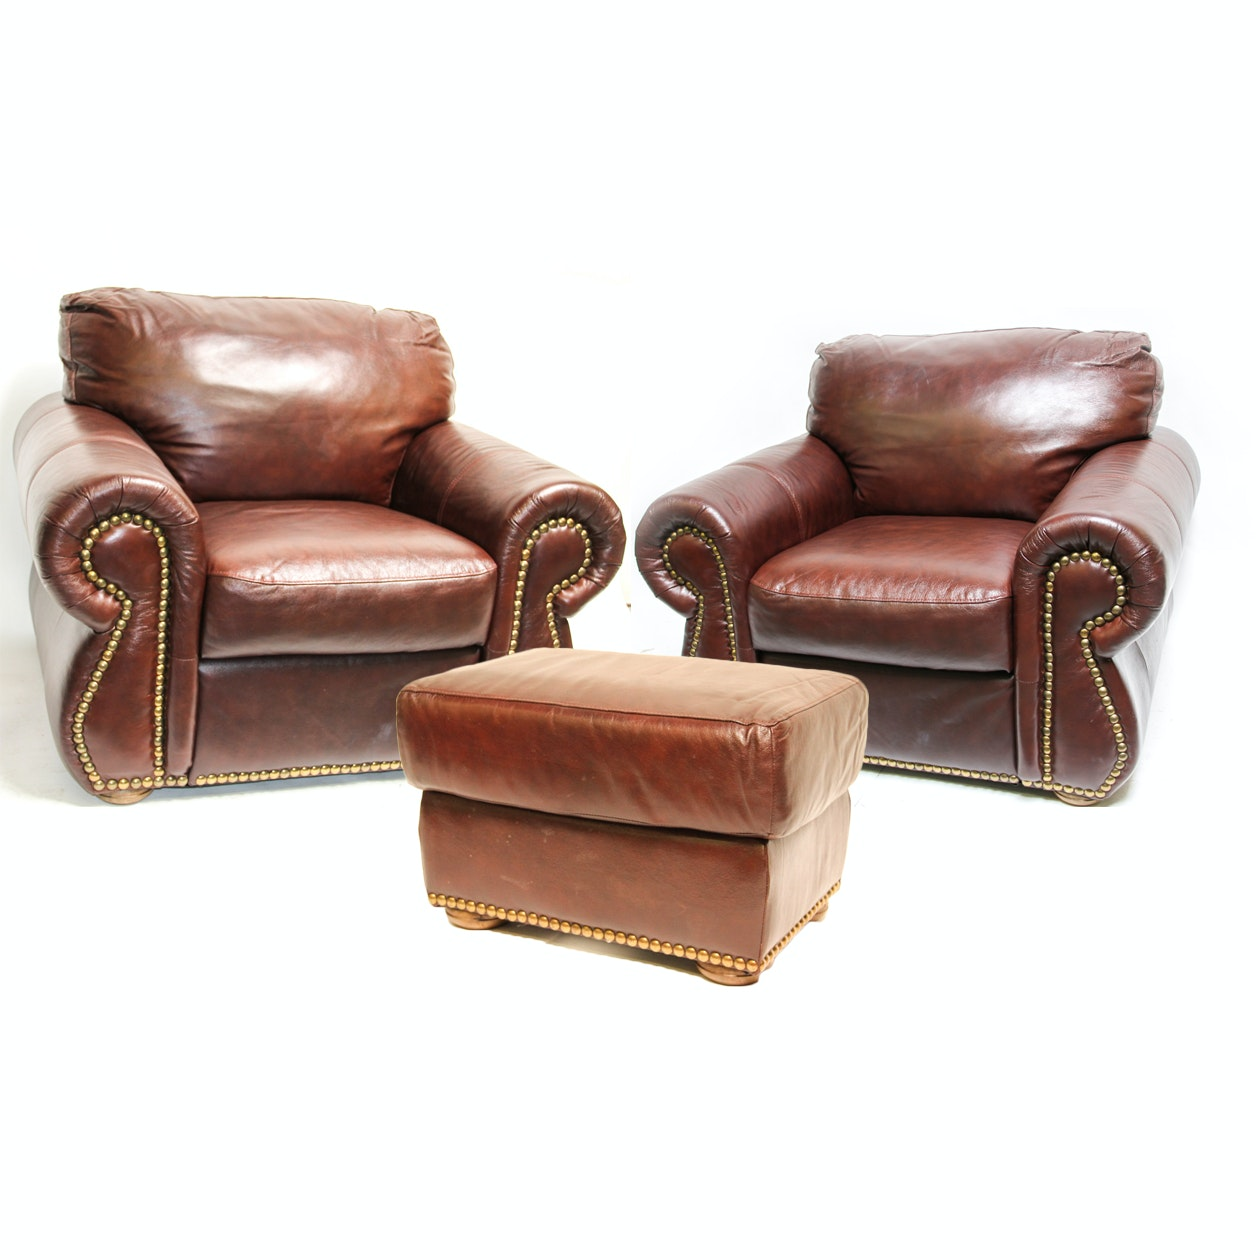 Two Brown Divani Chateau Du0027Ax Couch Chairs And An Ottoman ...